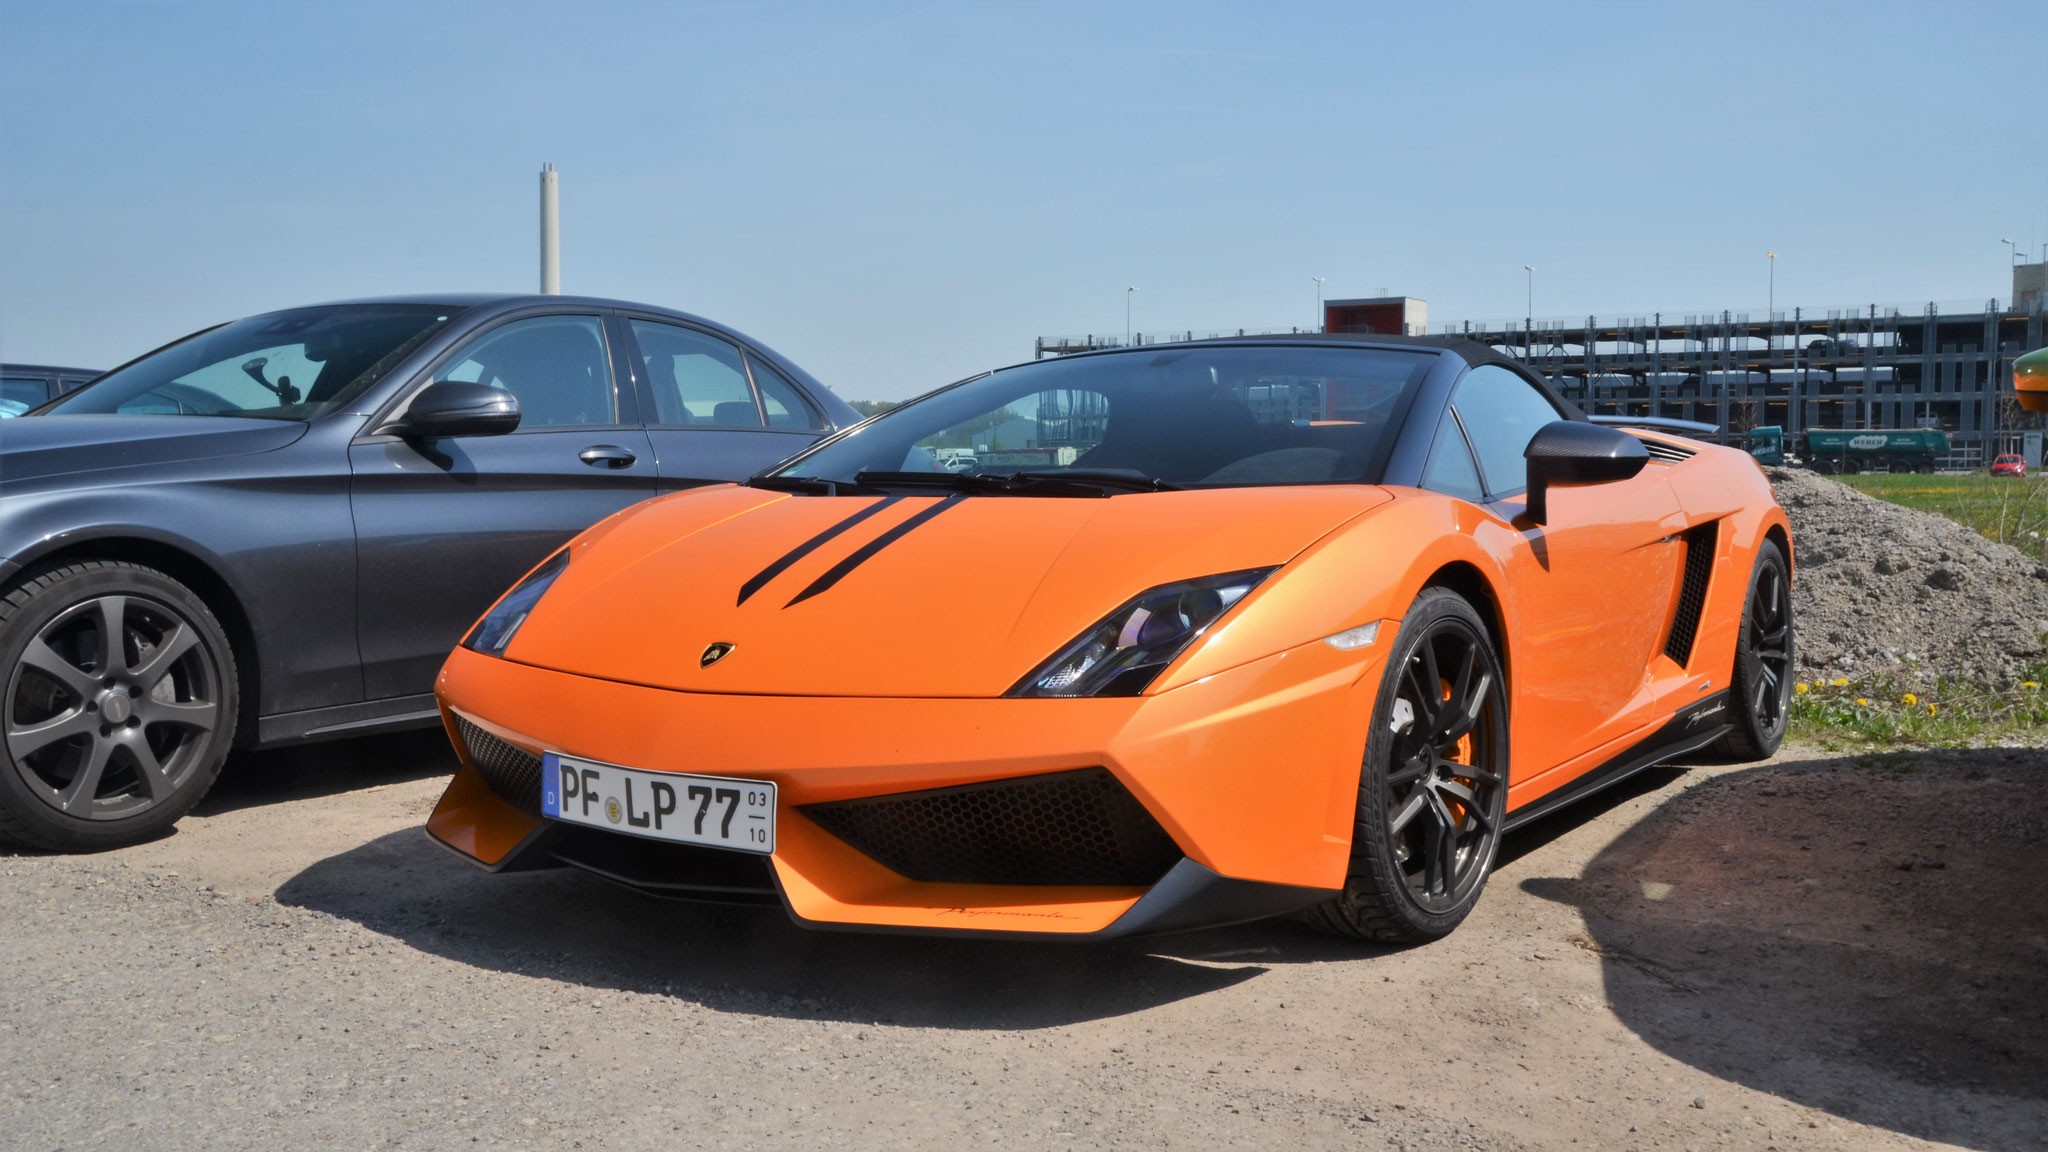 Lamborghini Gallardo LP 570-4Performante - PF-LP-77